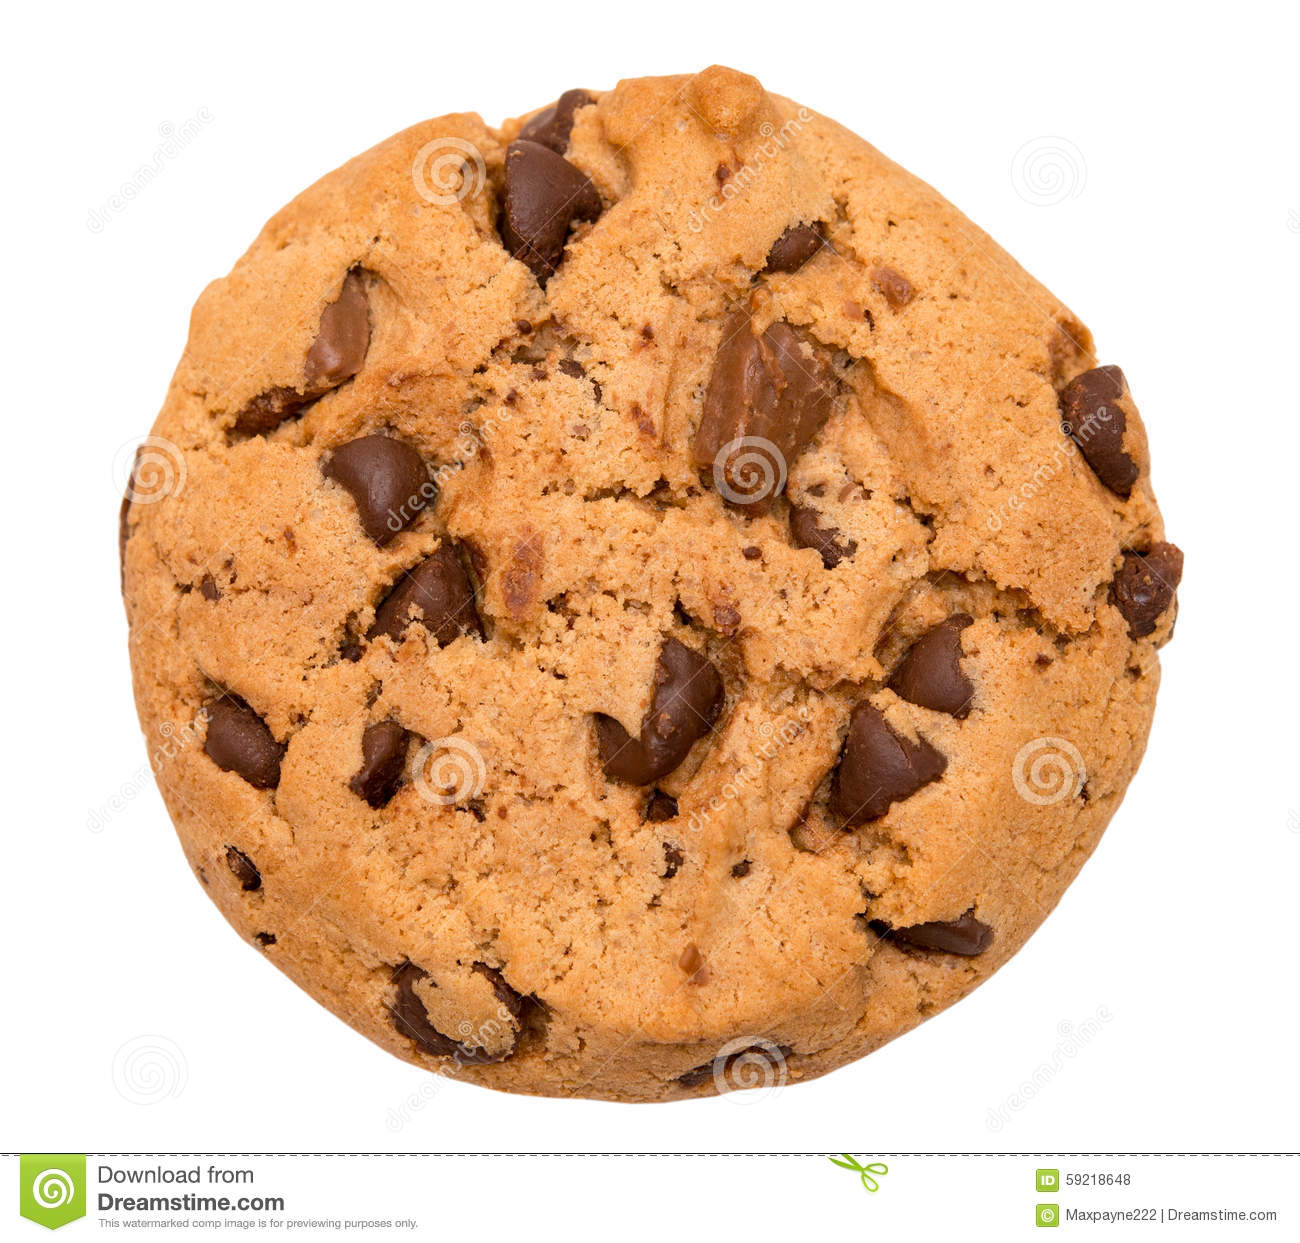 Chocolate Chip Cookie No Background